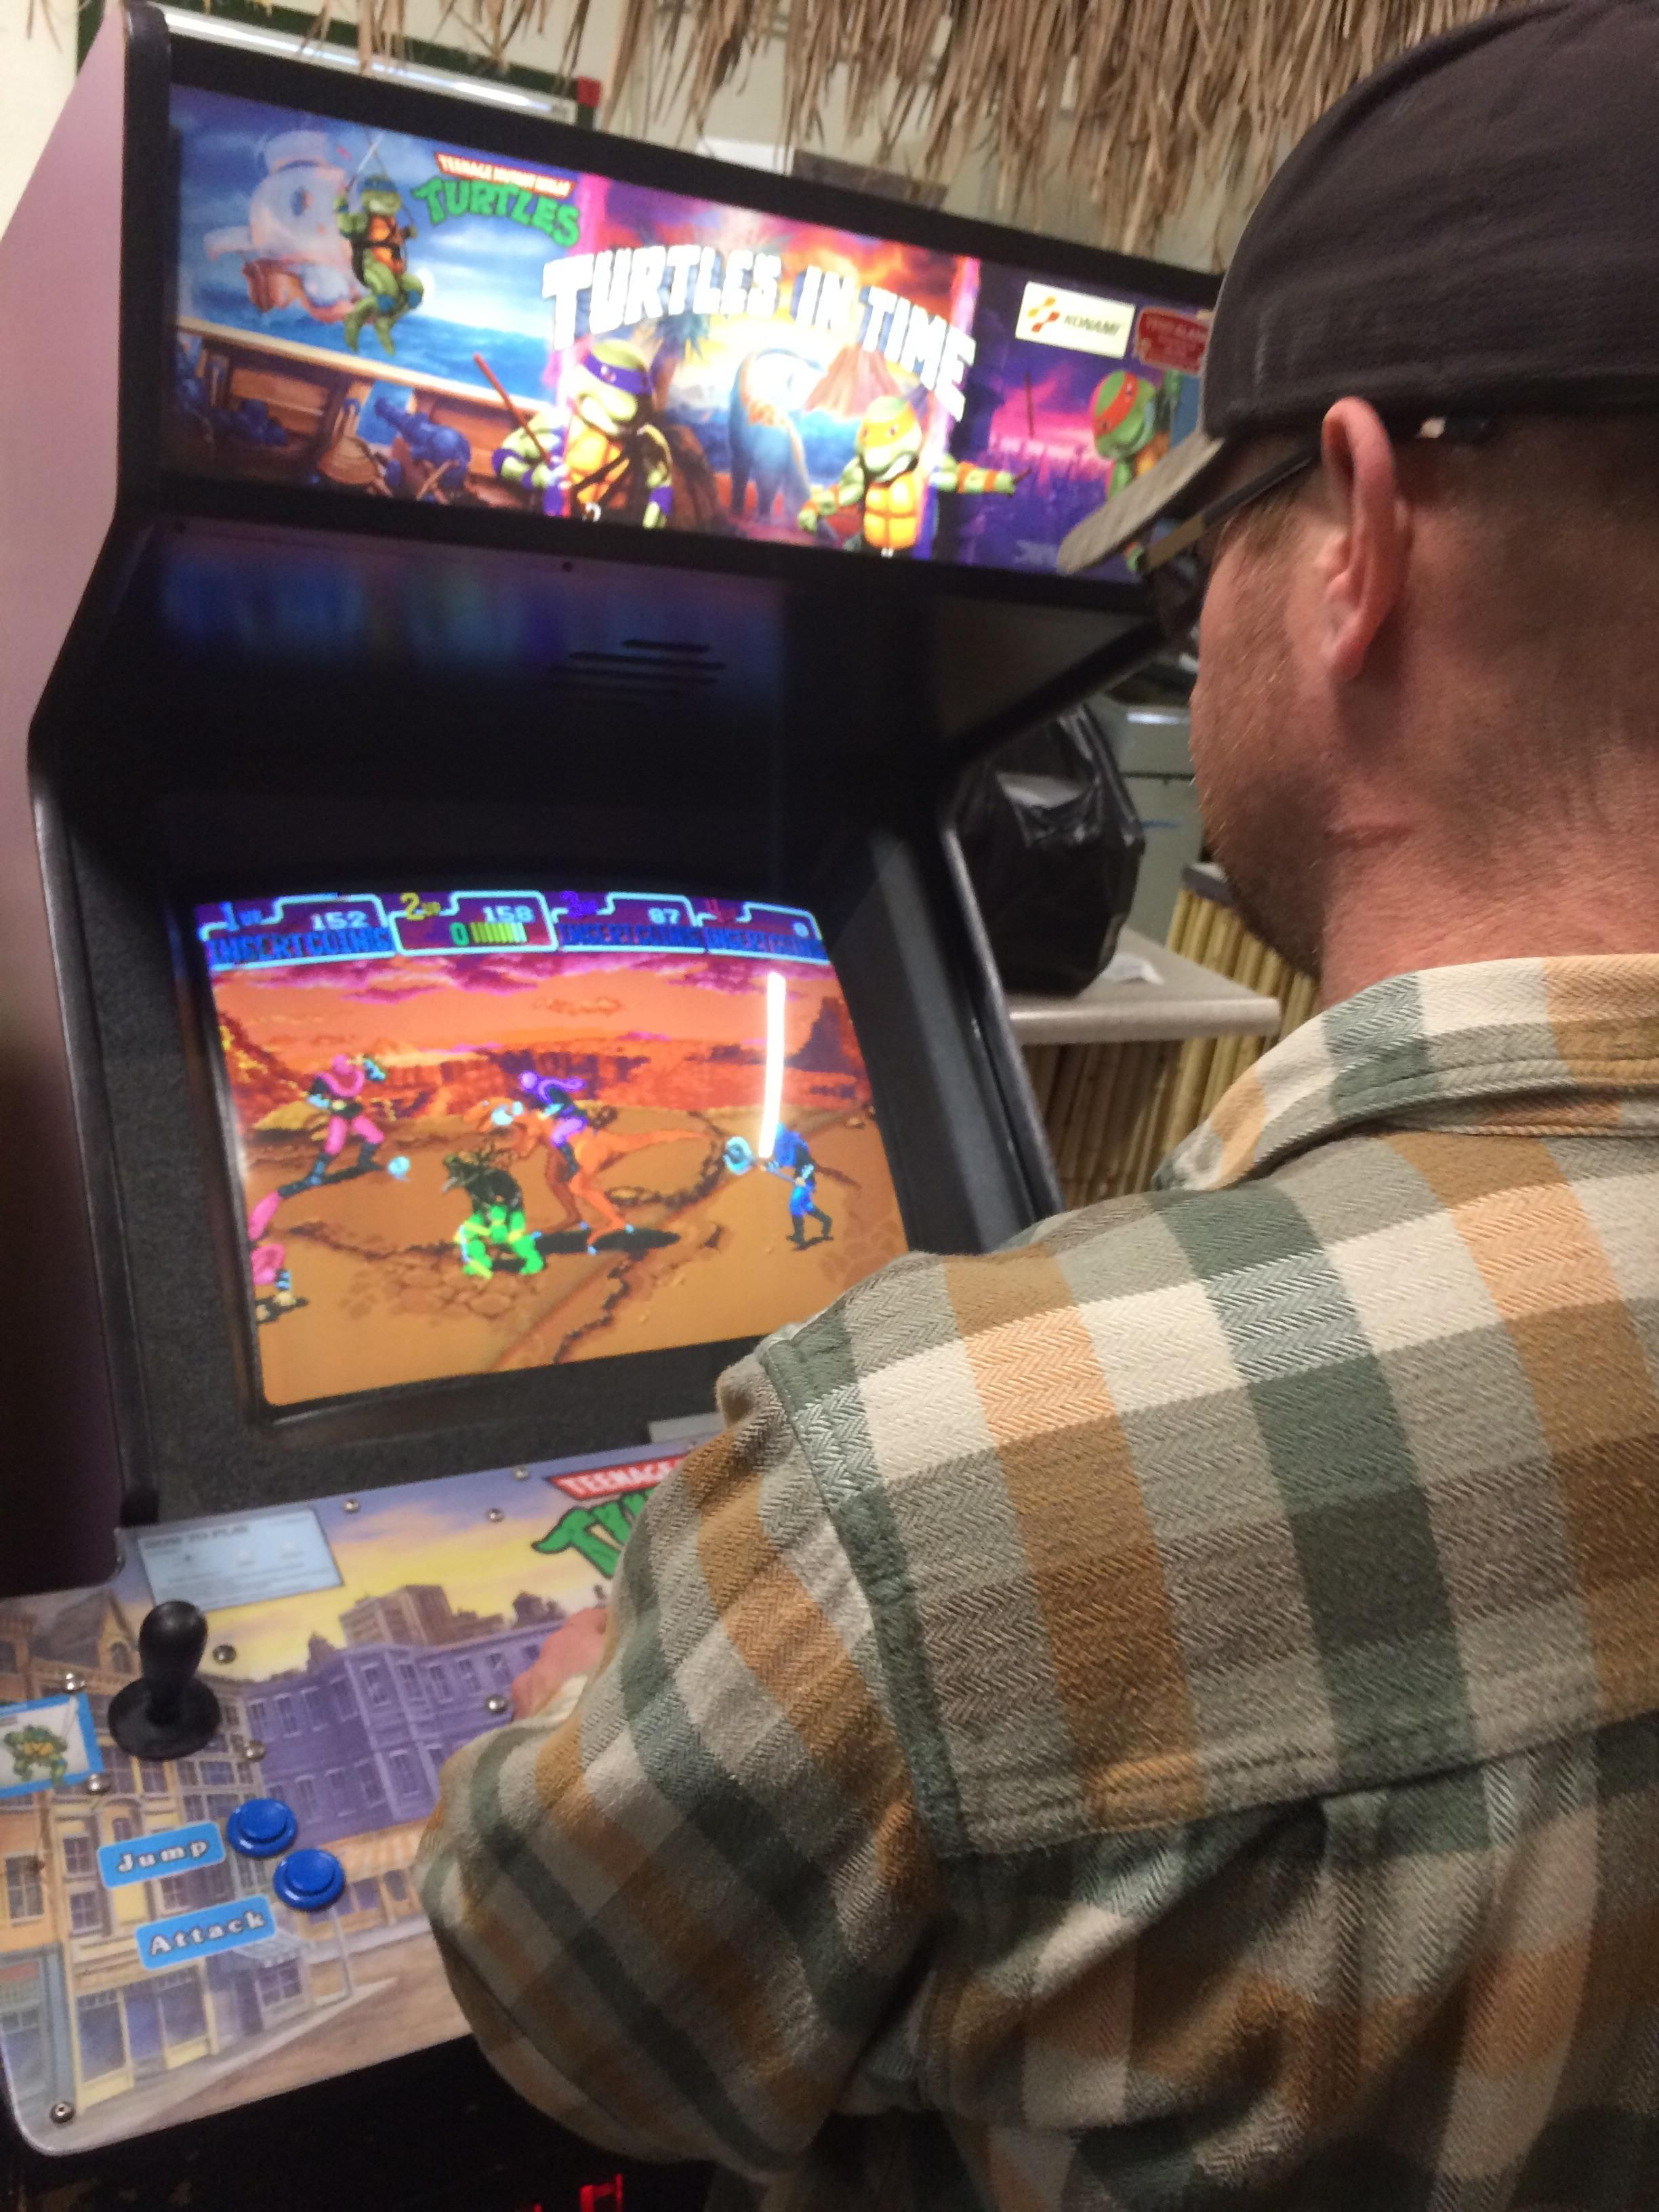 Our local cheesesteak shop has some classic arcade games set up my coworkers and i